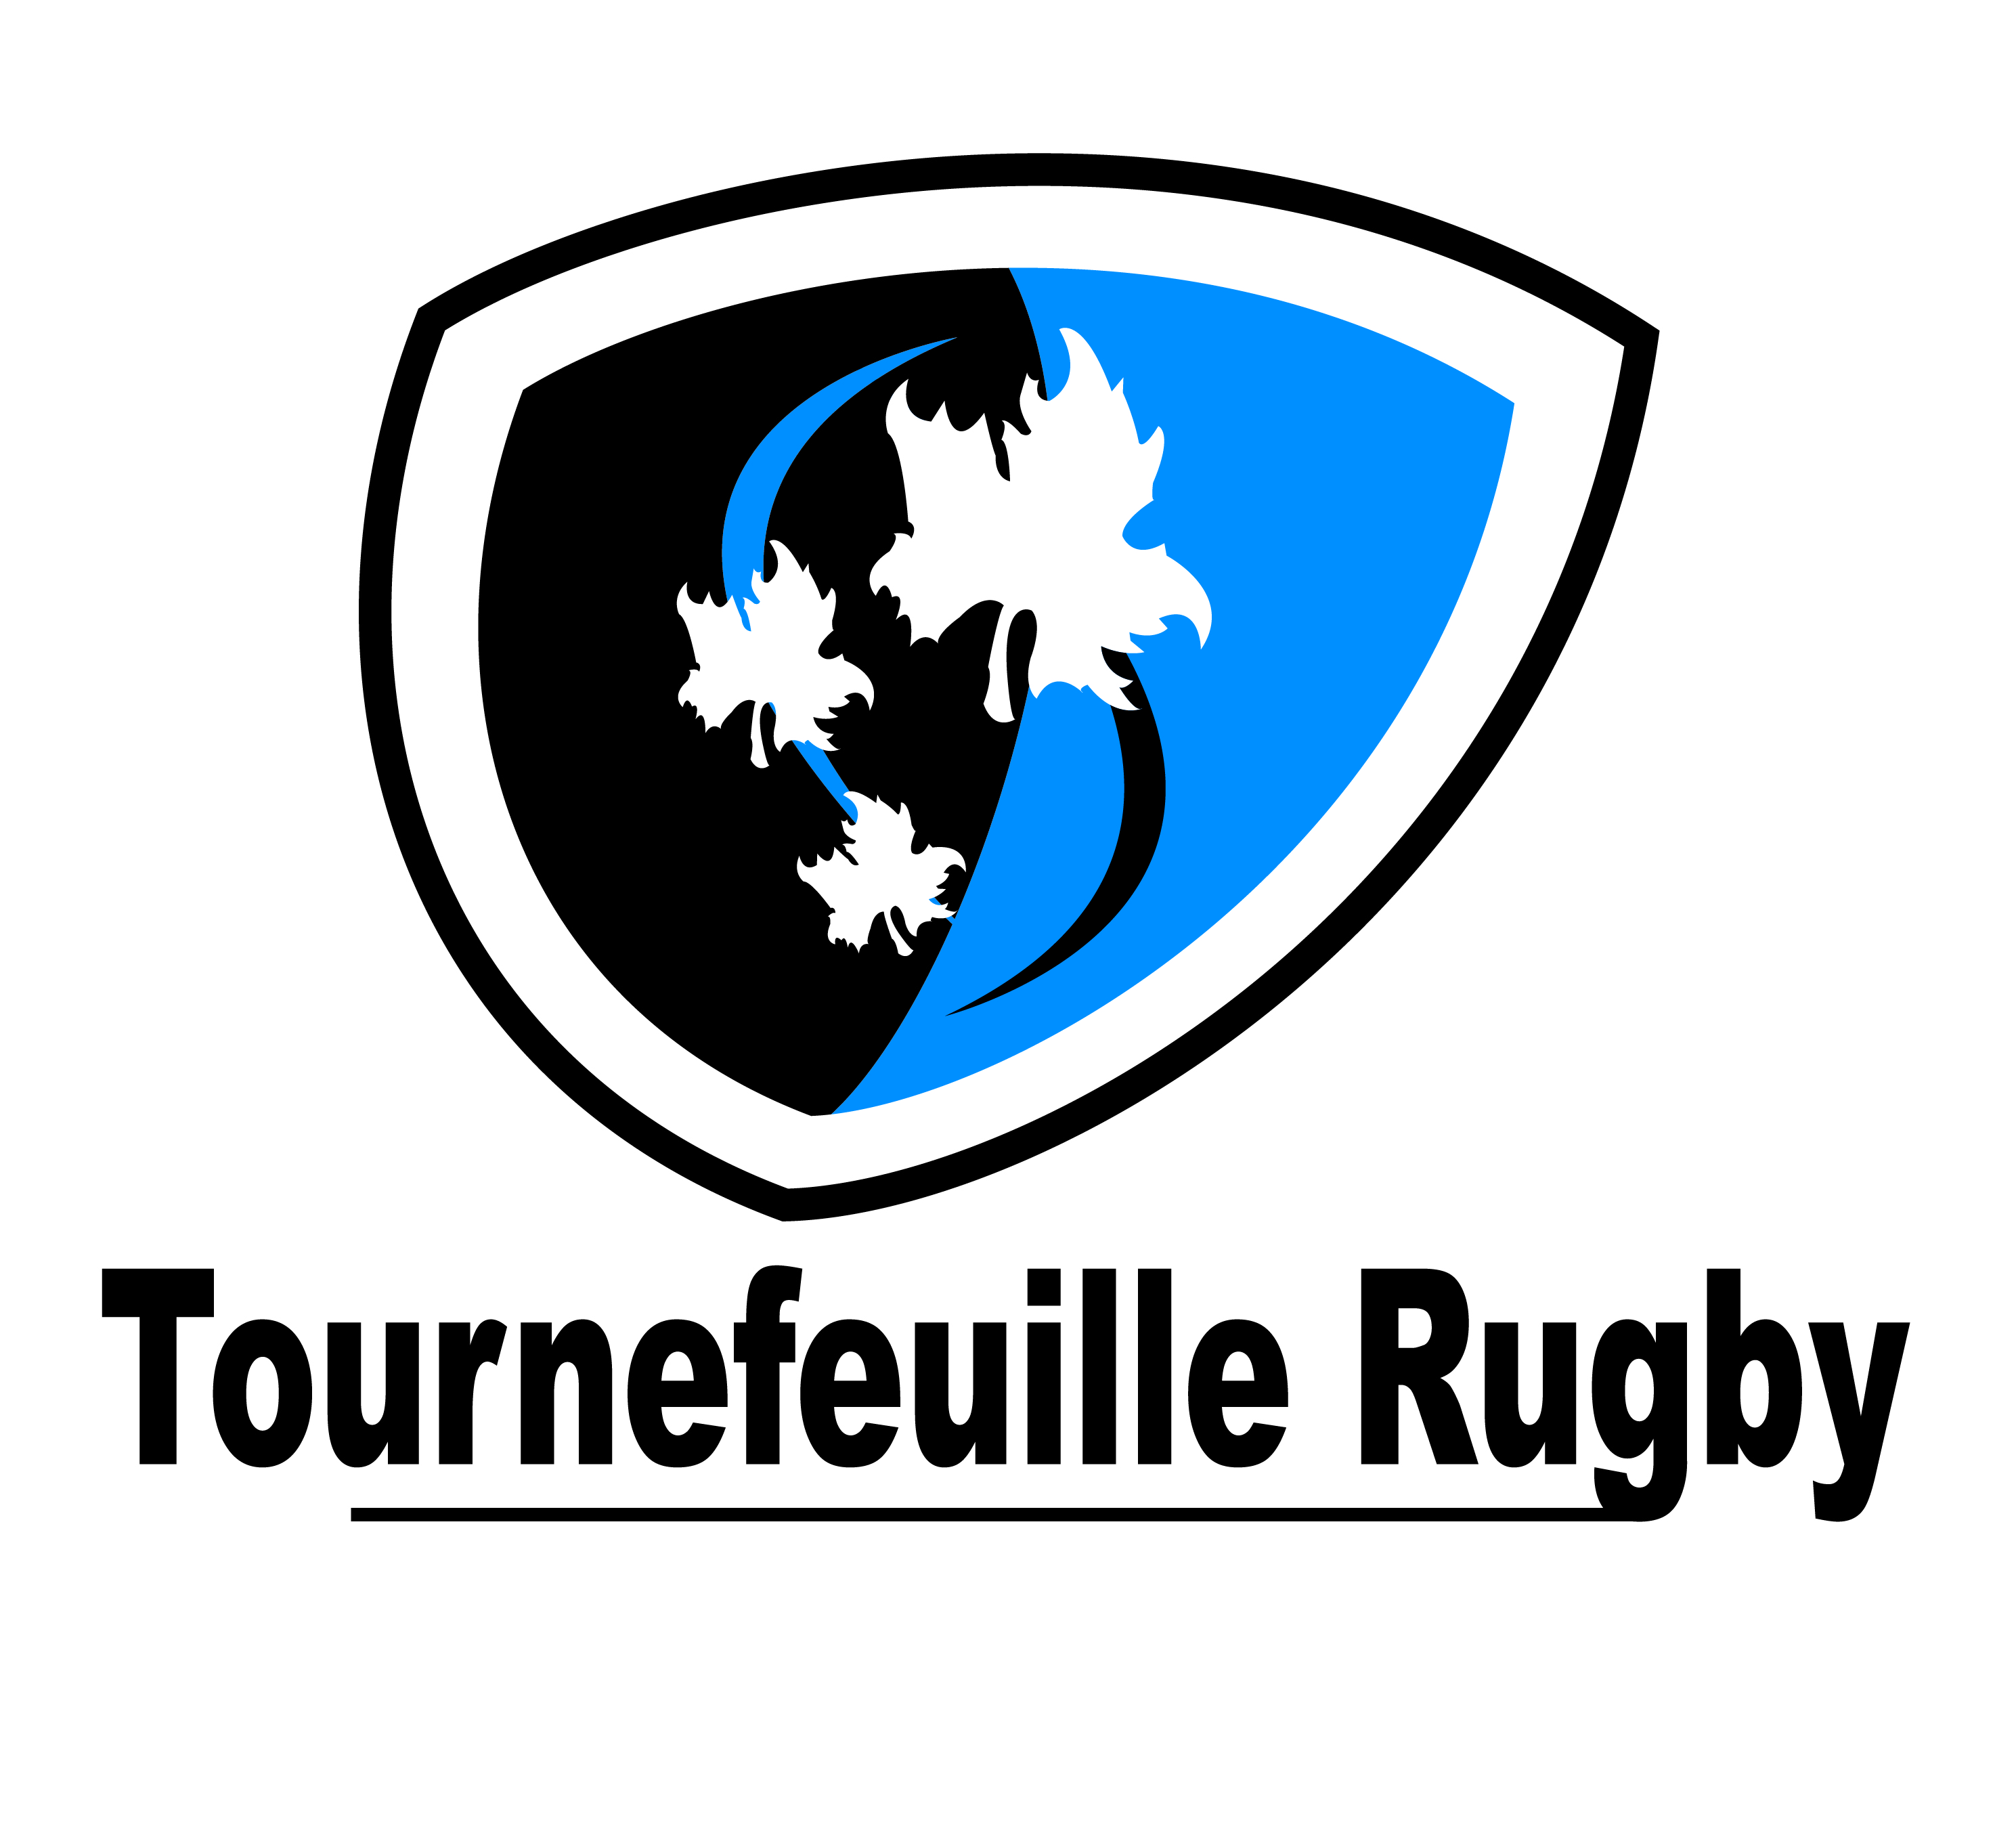 AS Tournefeuille Rugby